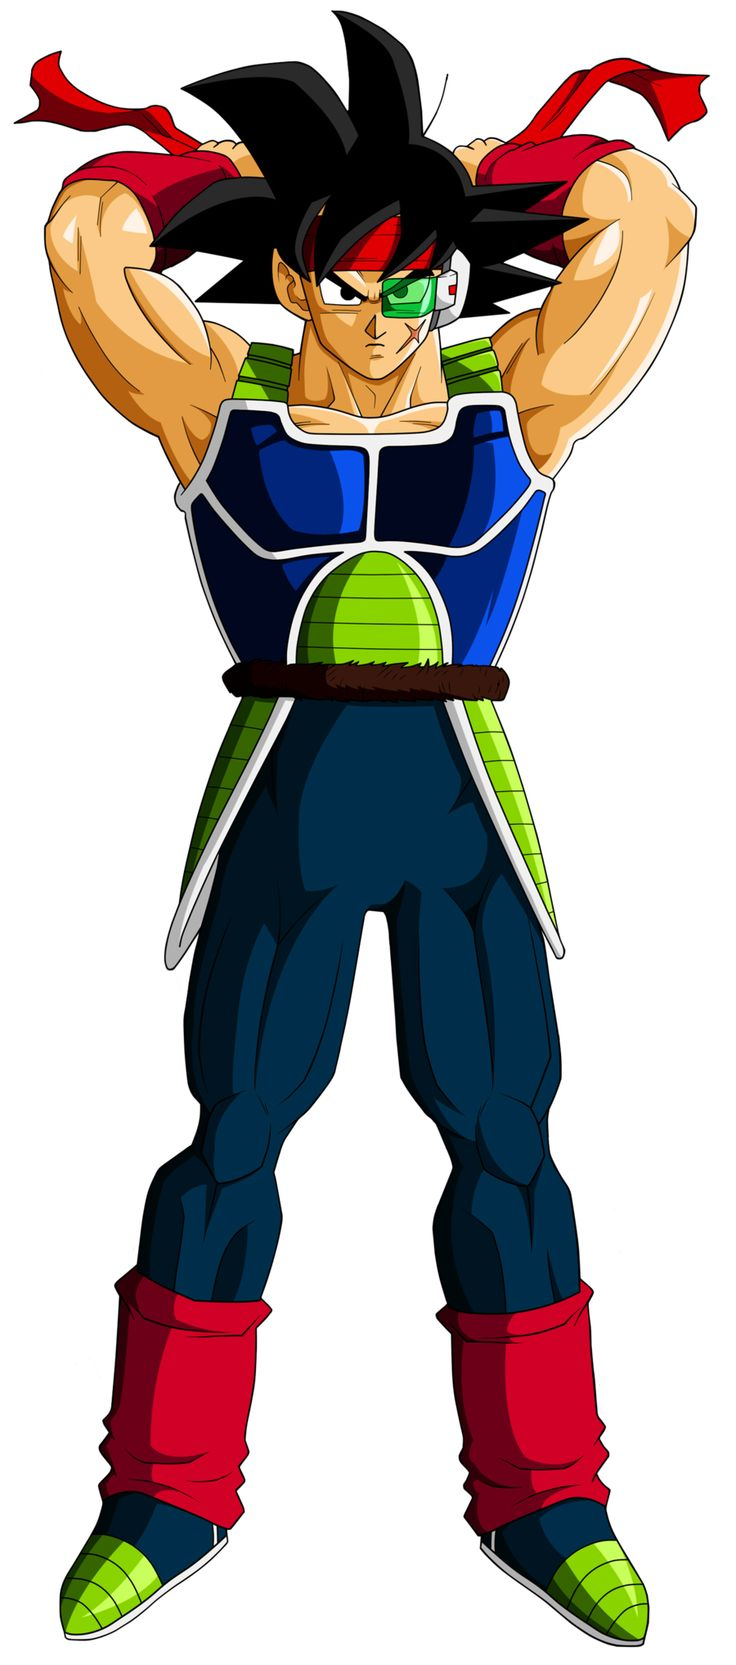 Dragon Ball Z Anime Characters : Best dbz animated pics images on pinterest anime